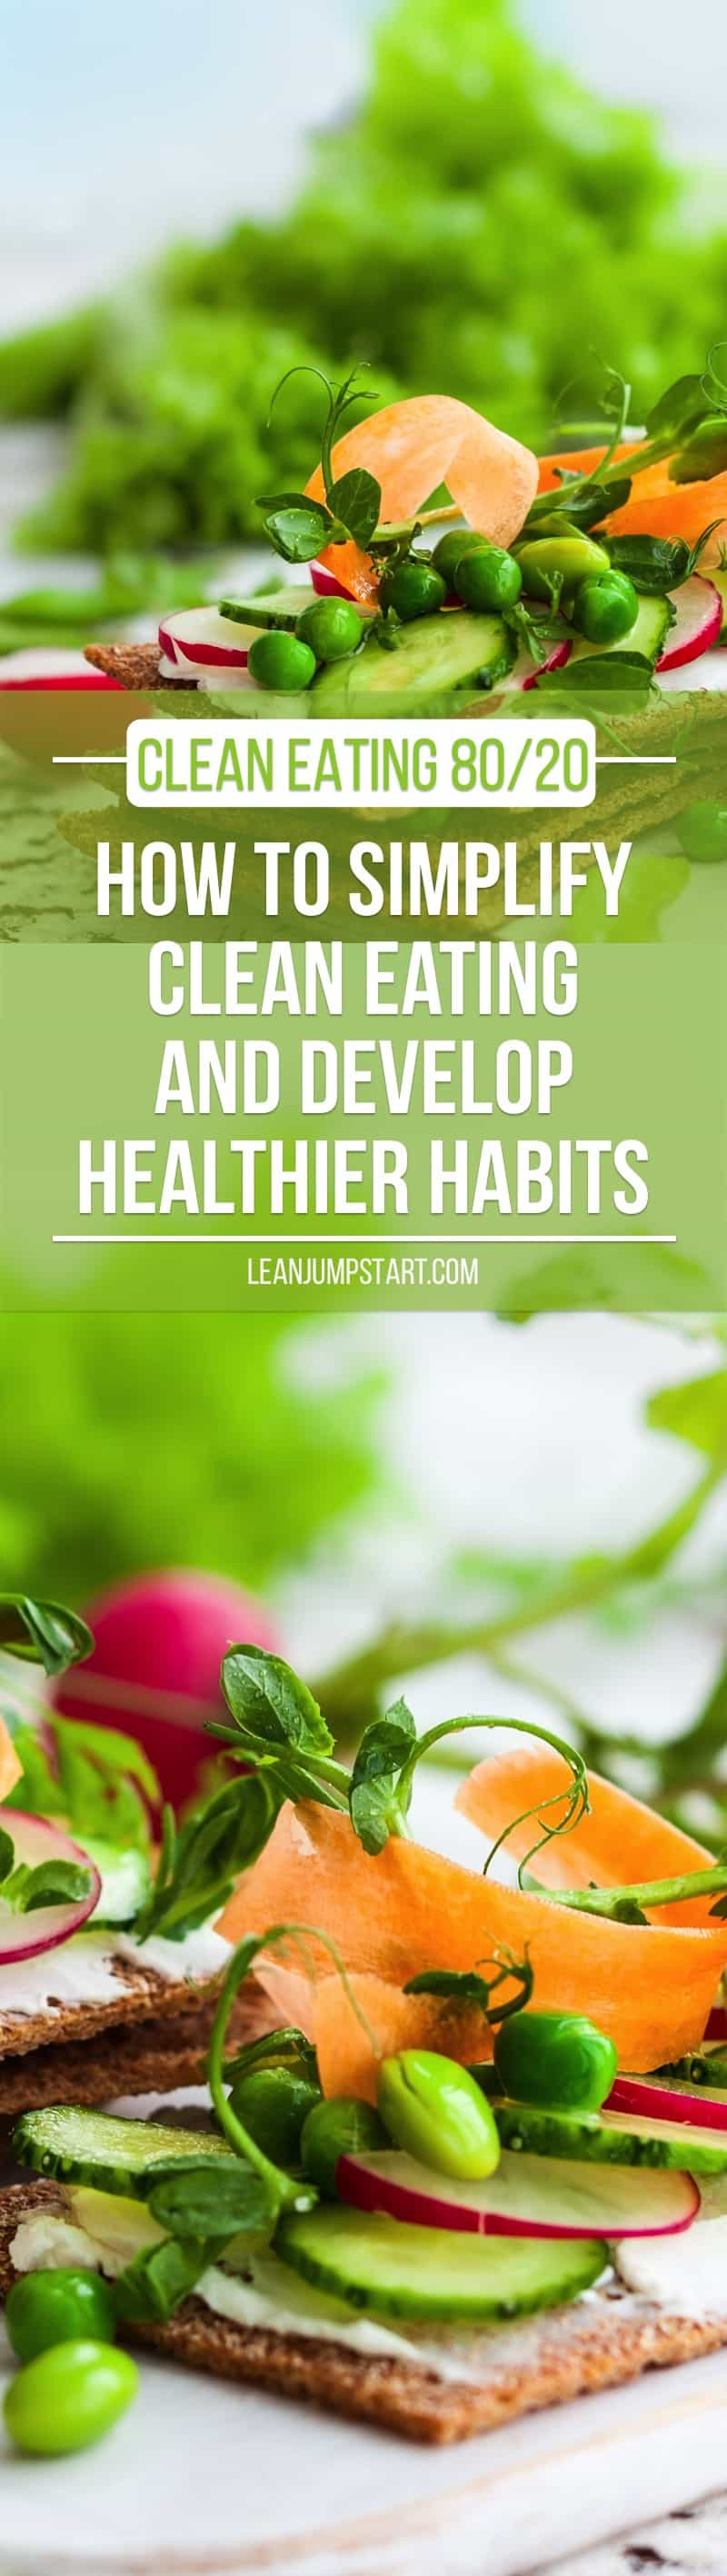 how to simplify your clean eating diet and develop healthy habits